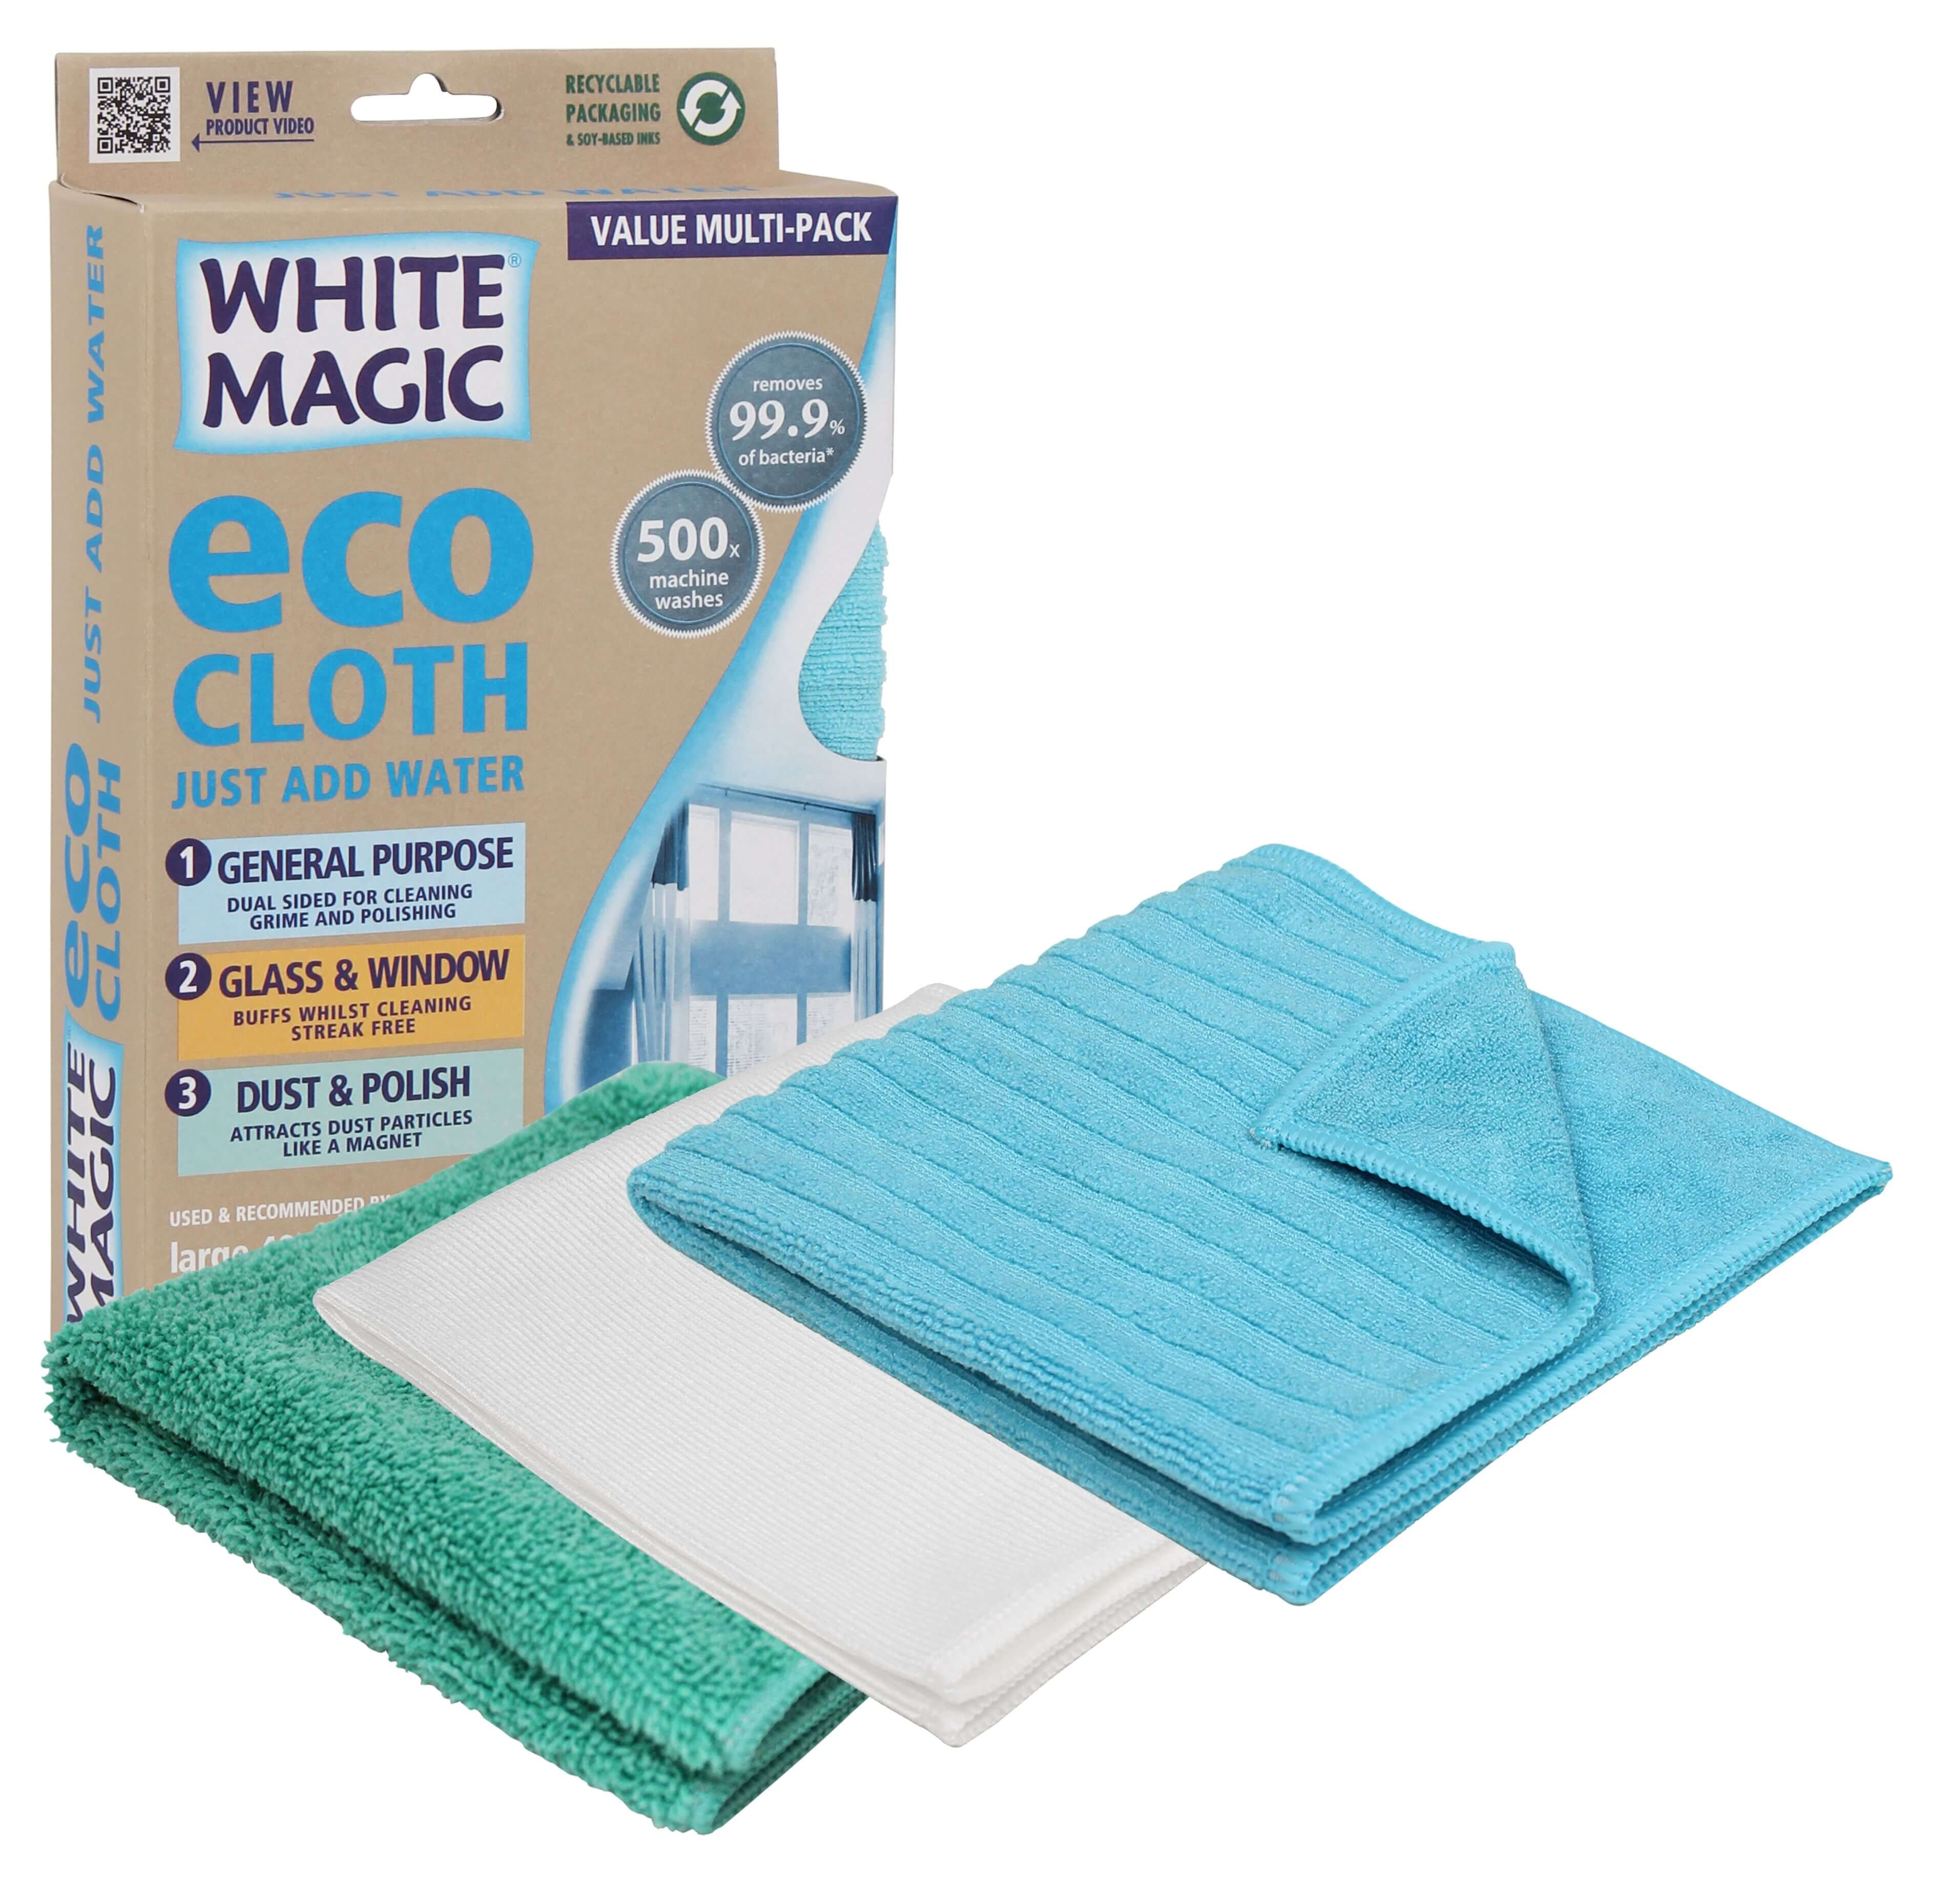 Eco Cloth Household Value Pack | Cleaning aids | Reuze It | Eco Store | Eco Friendly Products